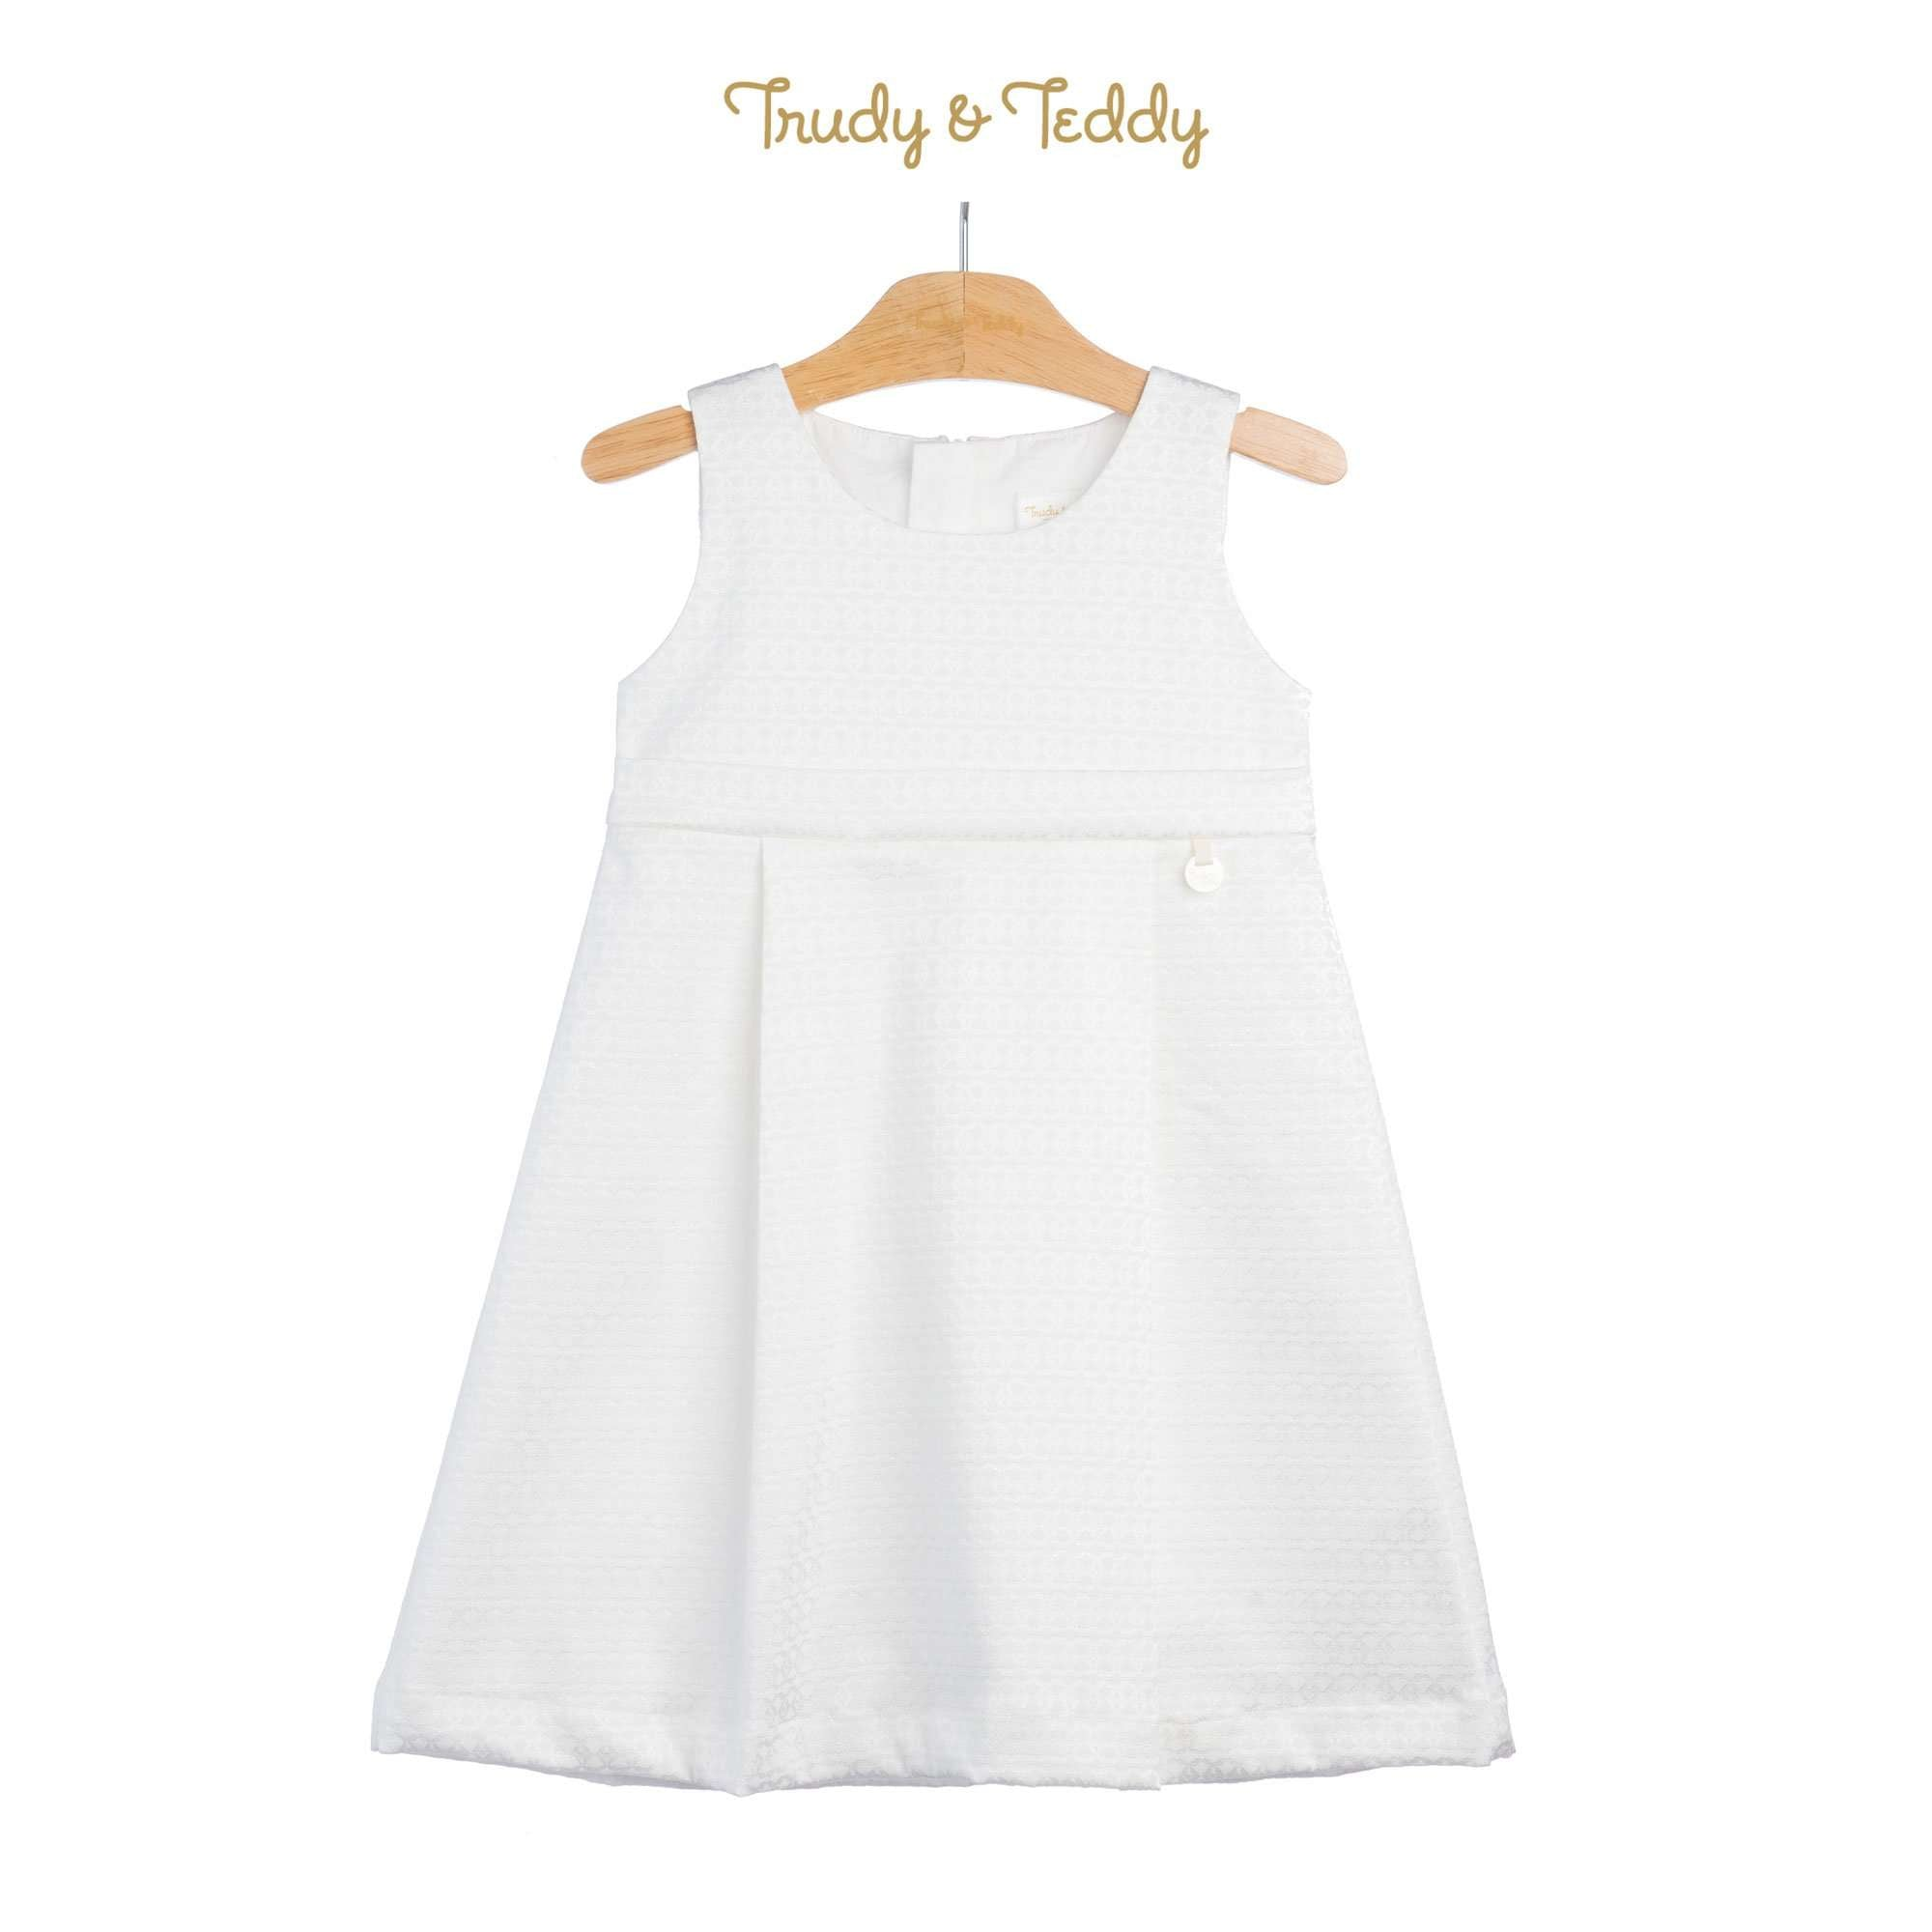 Trudy & Teddy Toddler Girl Sleeveless Dress 815079-311 : Buy Trudy & Teddy online at CMG.MY